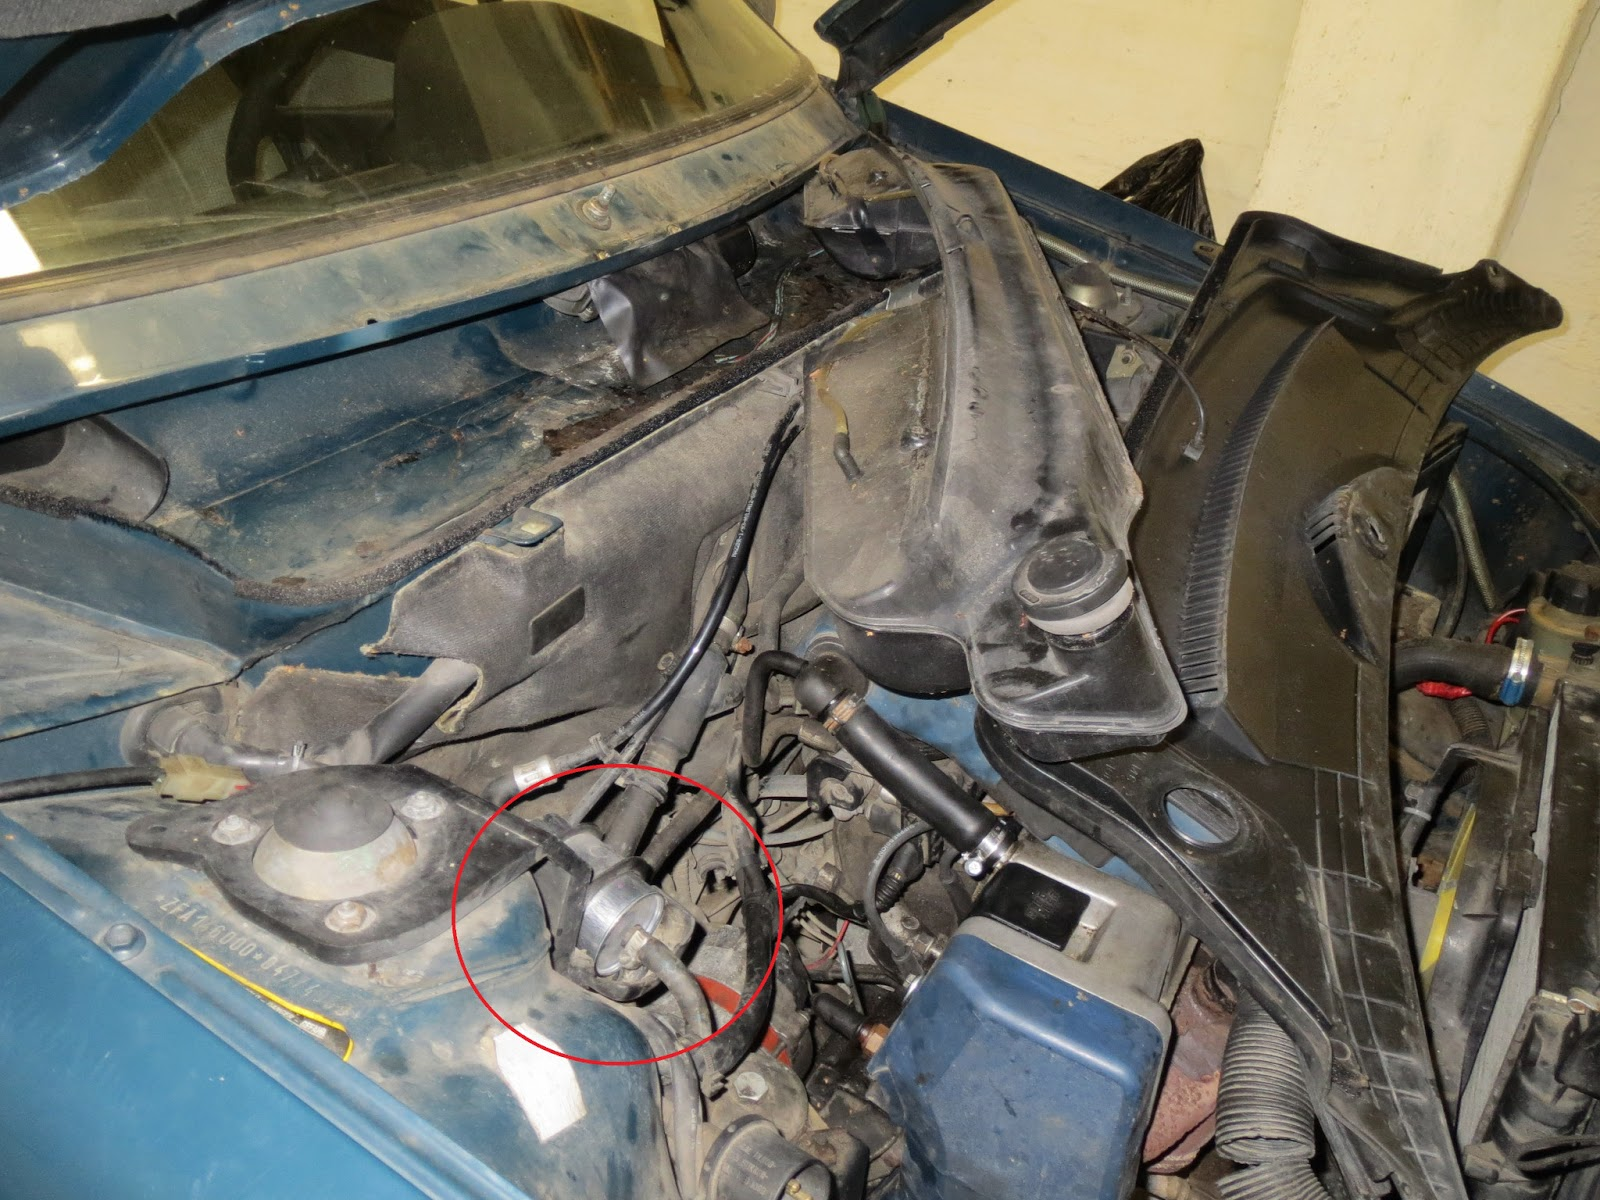 Wiring Diagram For Fiat Uno Libraries Electrical 1100 Libraryafter Noticing That Air Intake To Cabin Is Full Of